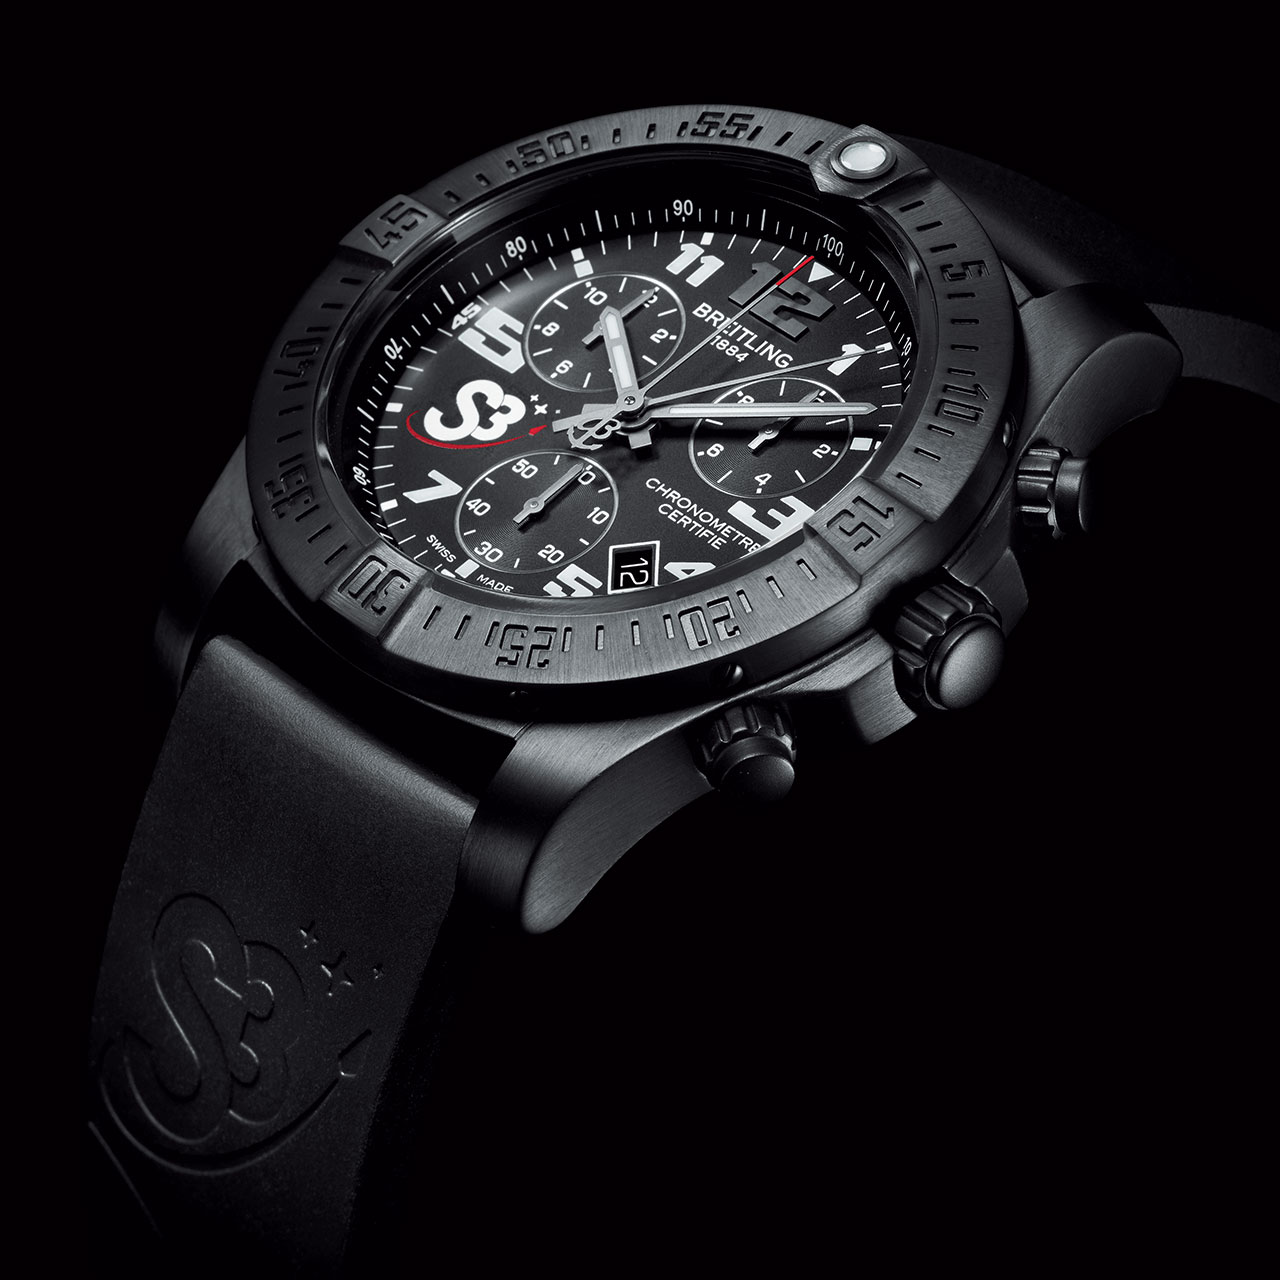 Breitling Chronograph S3 Watch